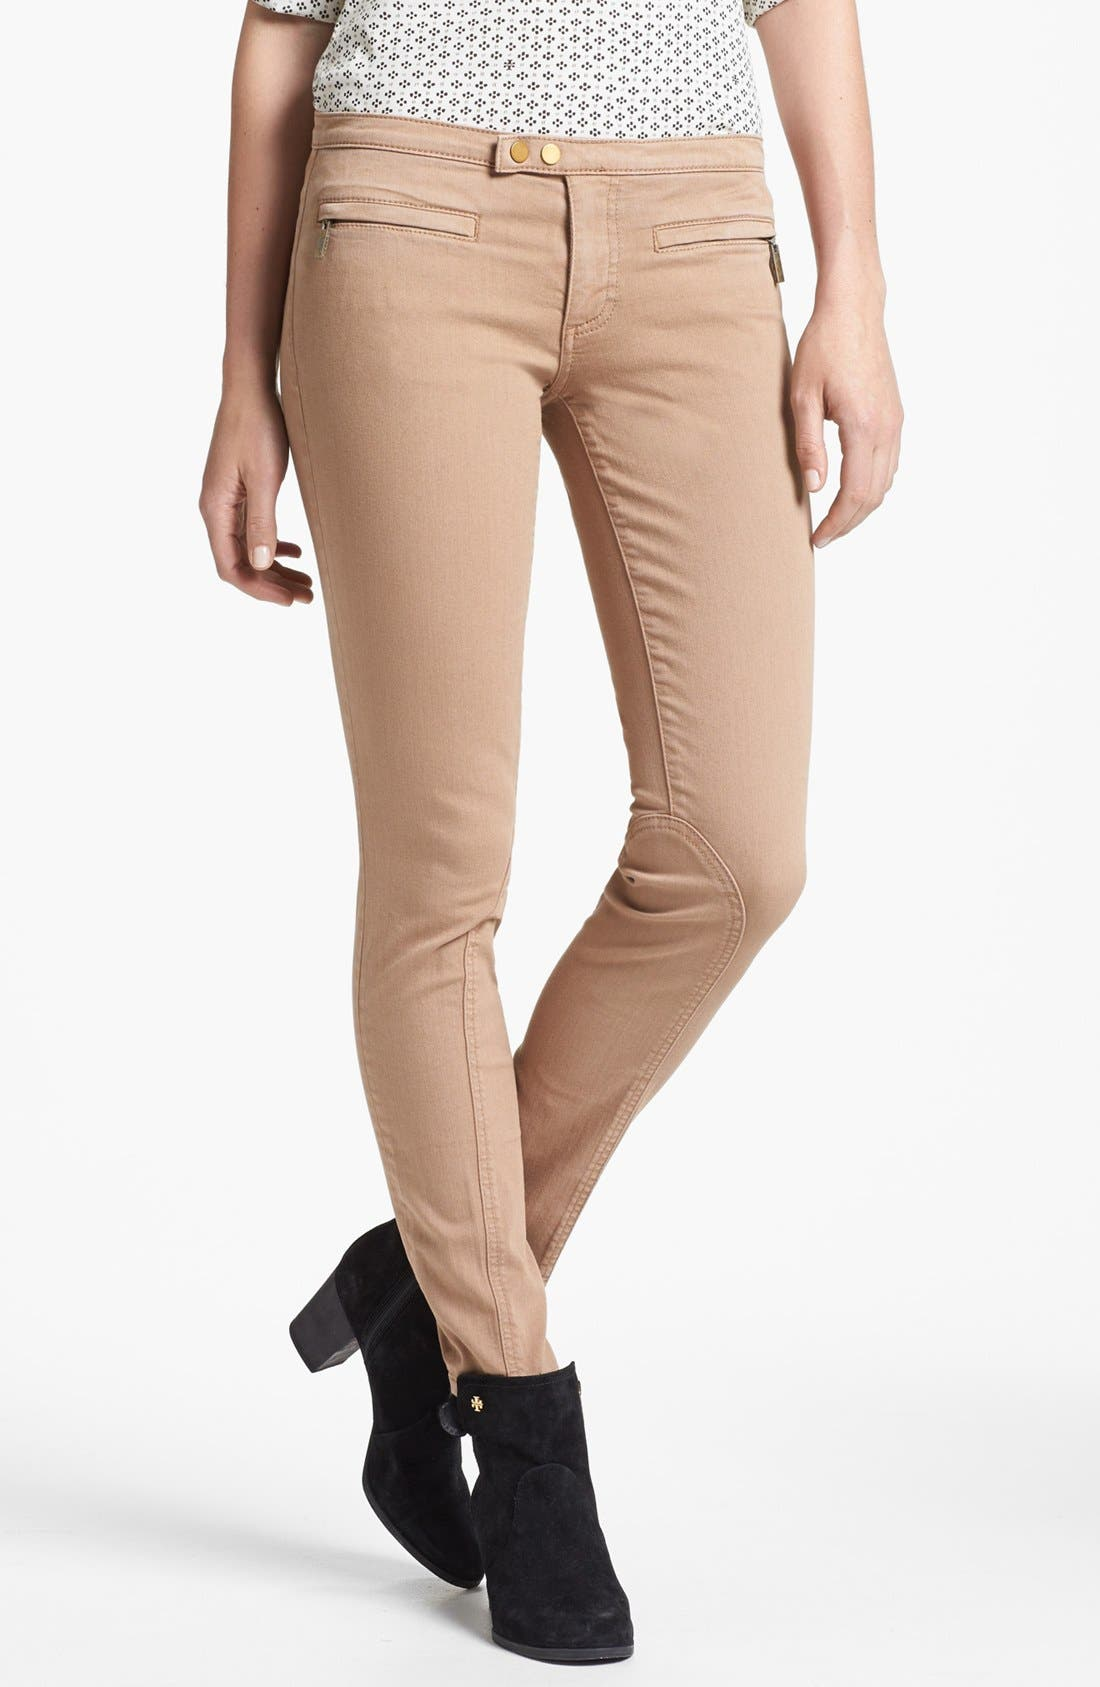 Alternate Image 1 Selected - Tory Burch 'Ellie' Colored Skinny Stretch Jeans (Almond)